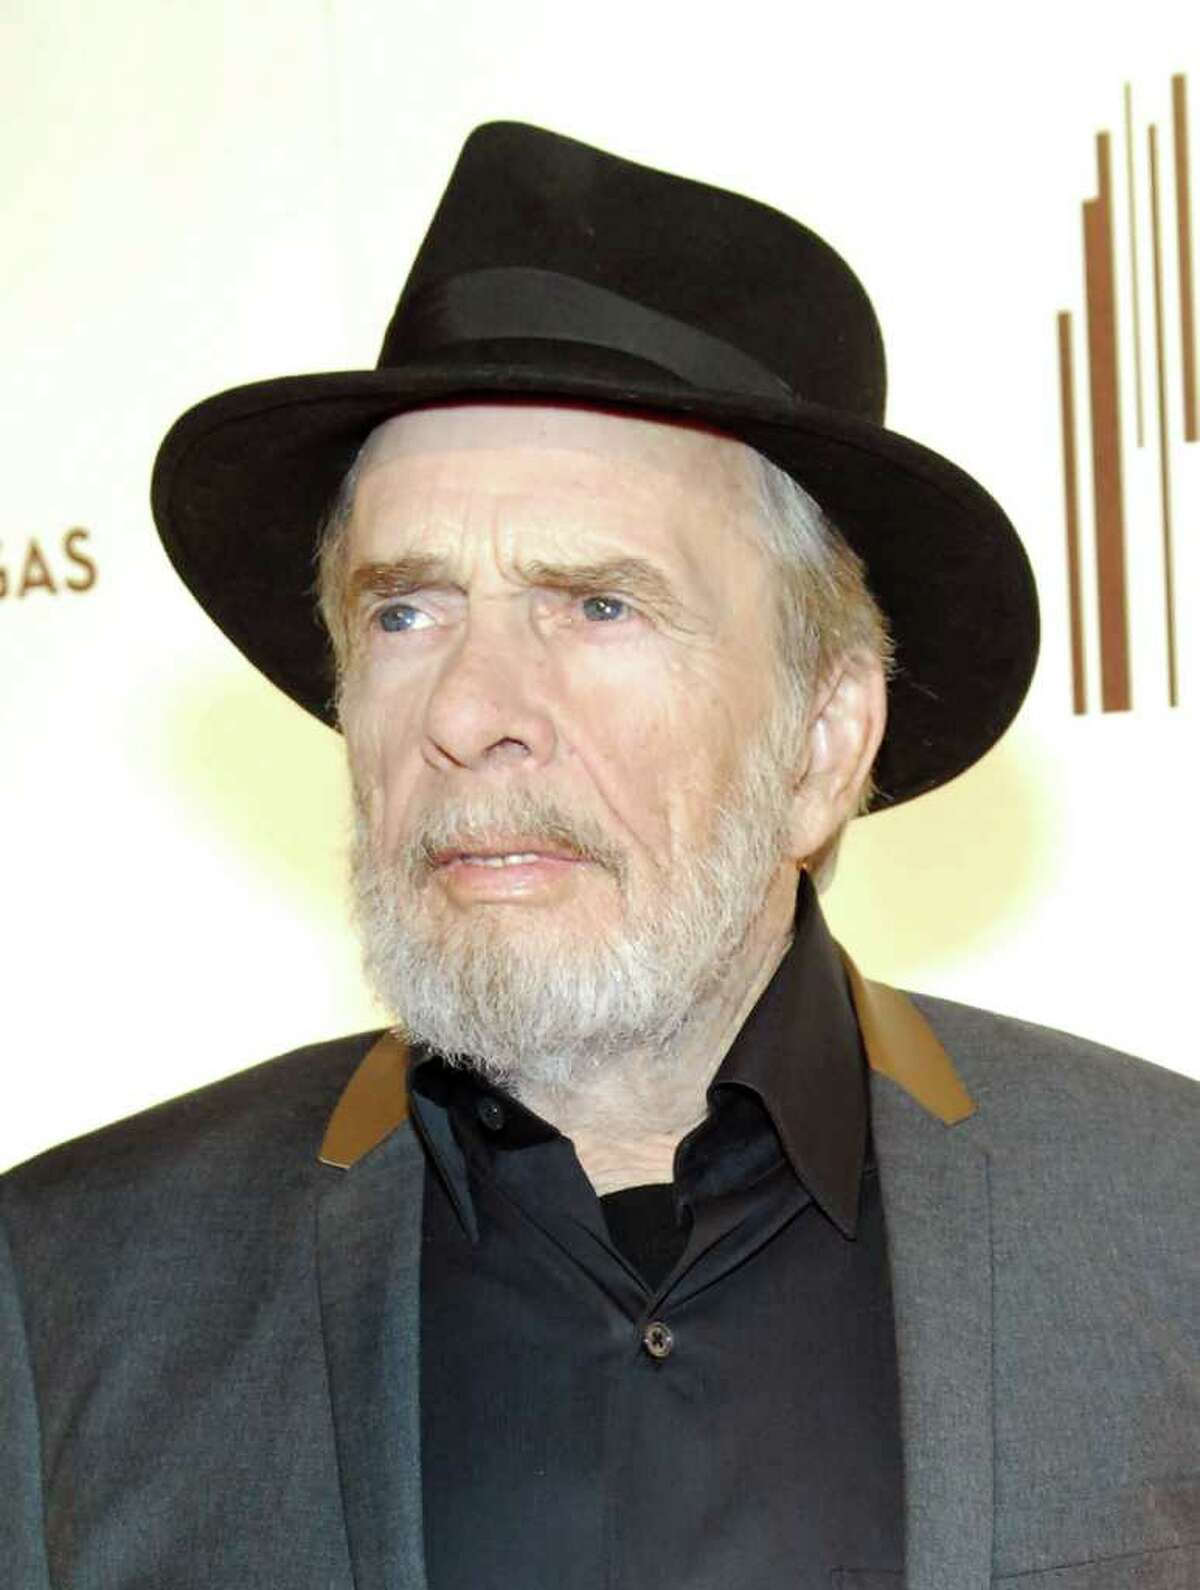 LAS VEGAS, NV - MARCH 10: Recording artist Merle Haggard arrives at the opening night of The Smith Center for the Performing Arts on March 10, 2012 in Las Vegas, Nevada. (Photo by Bryan Steffy/Getty Images for The Smith Center)